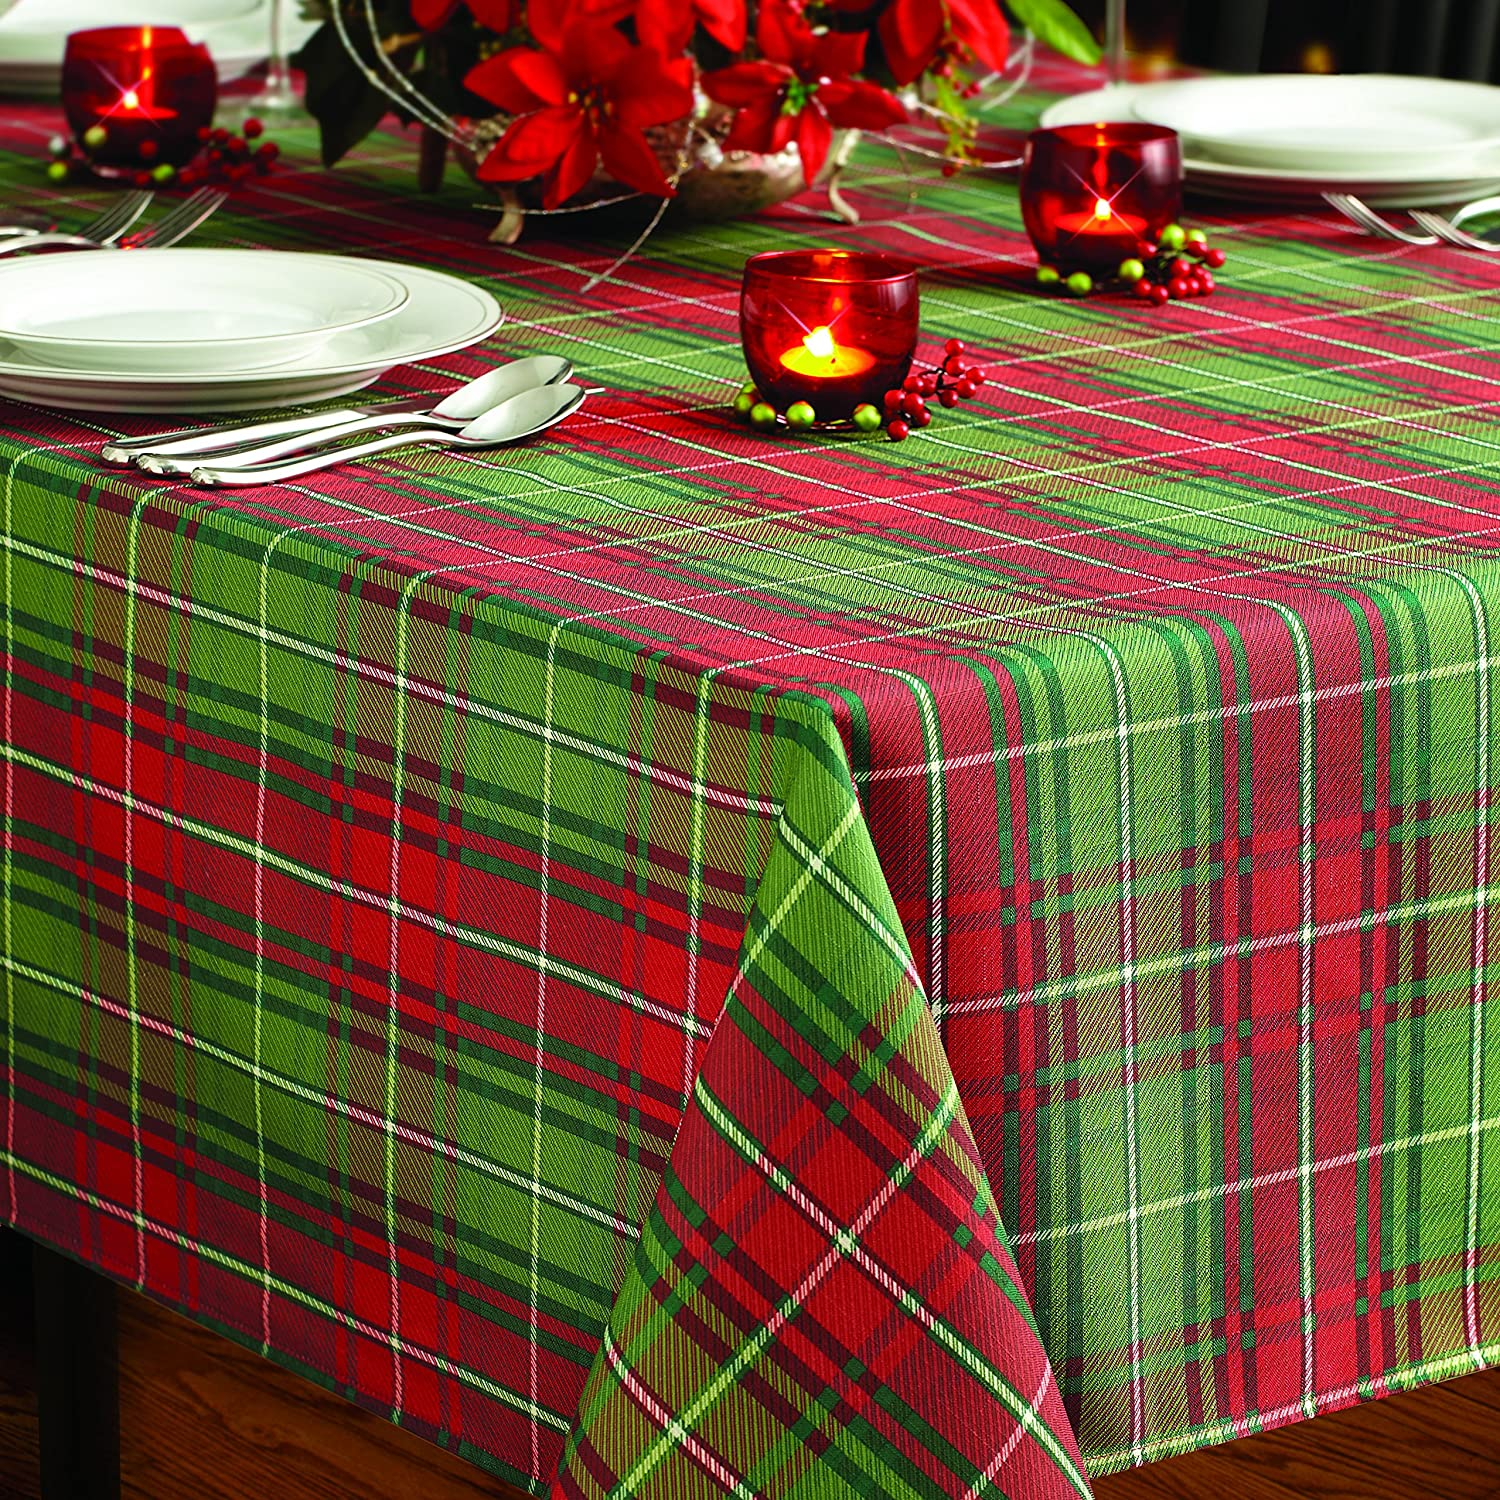 Amazing Amazon.com: Benson Mills Christmas Plaid Printed Tablecloth, 60 Inch By  120 Inch: Home U0026 Kitchen